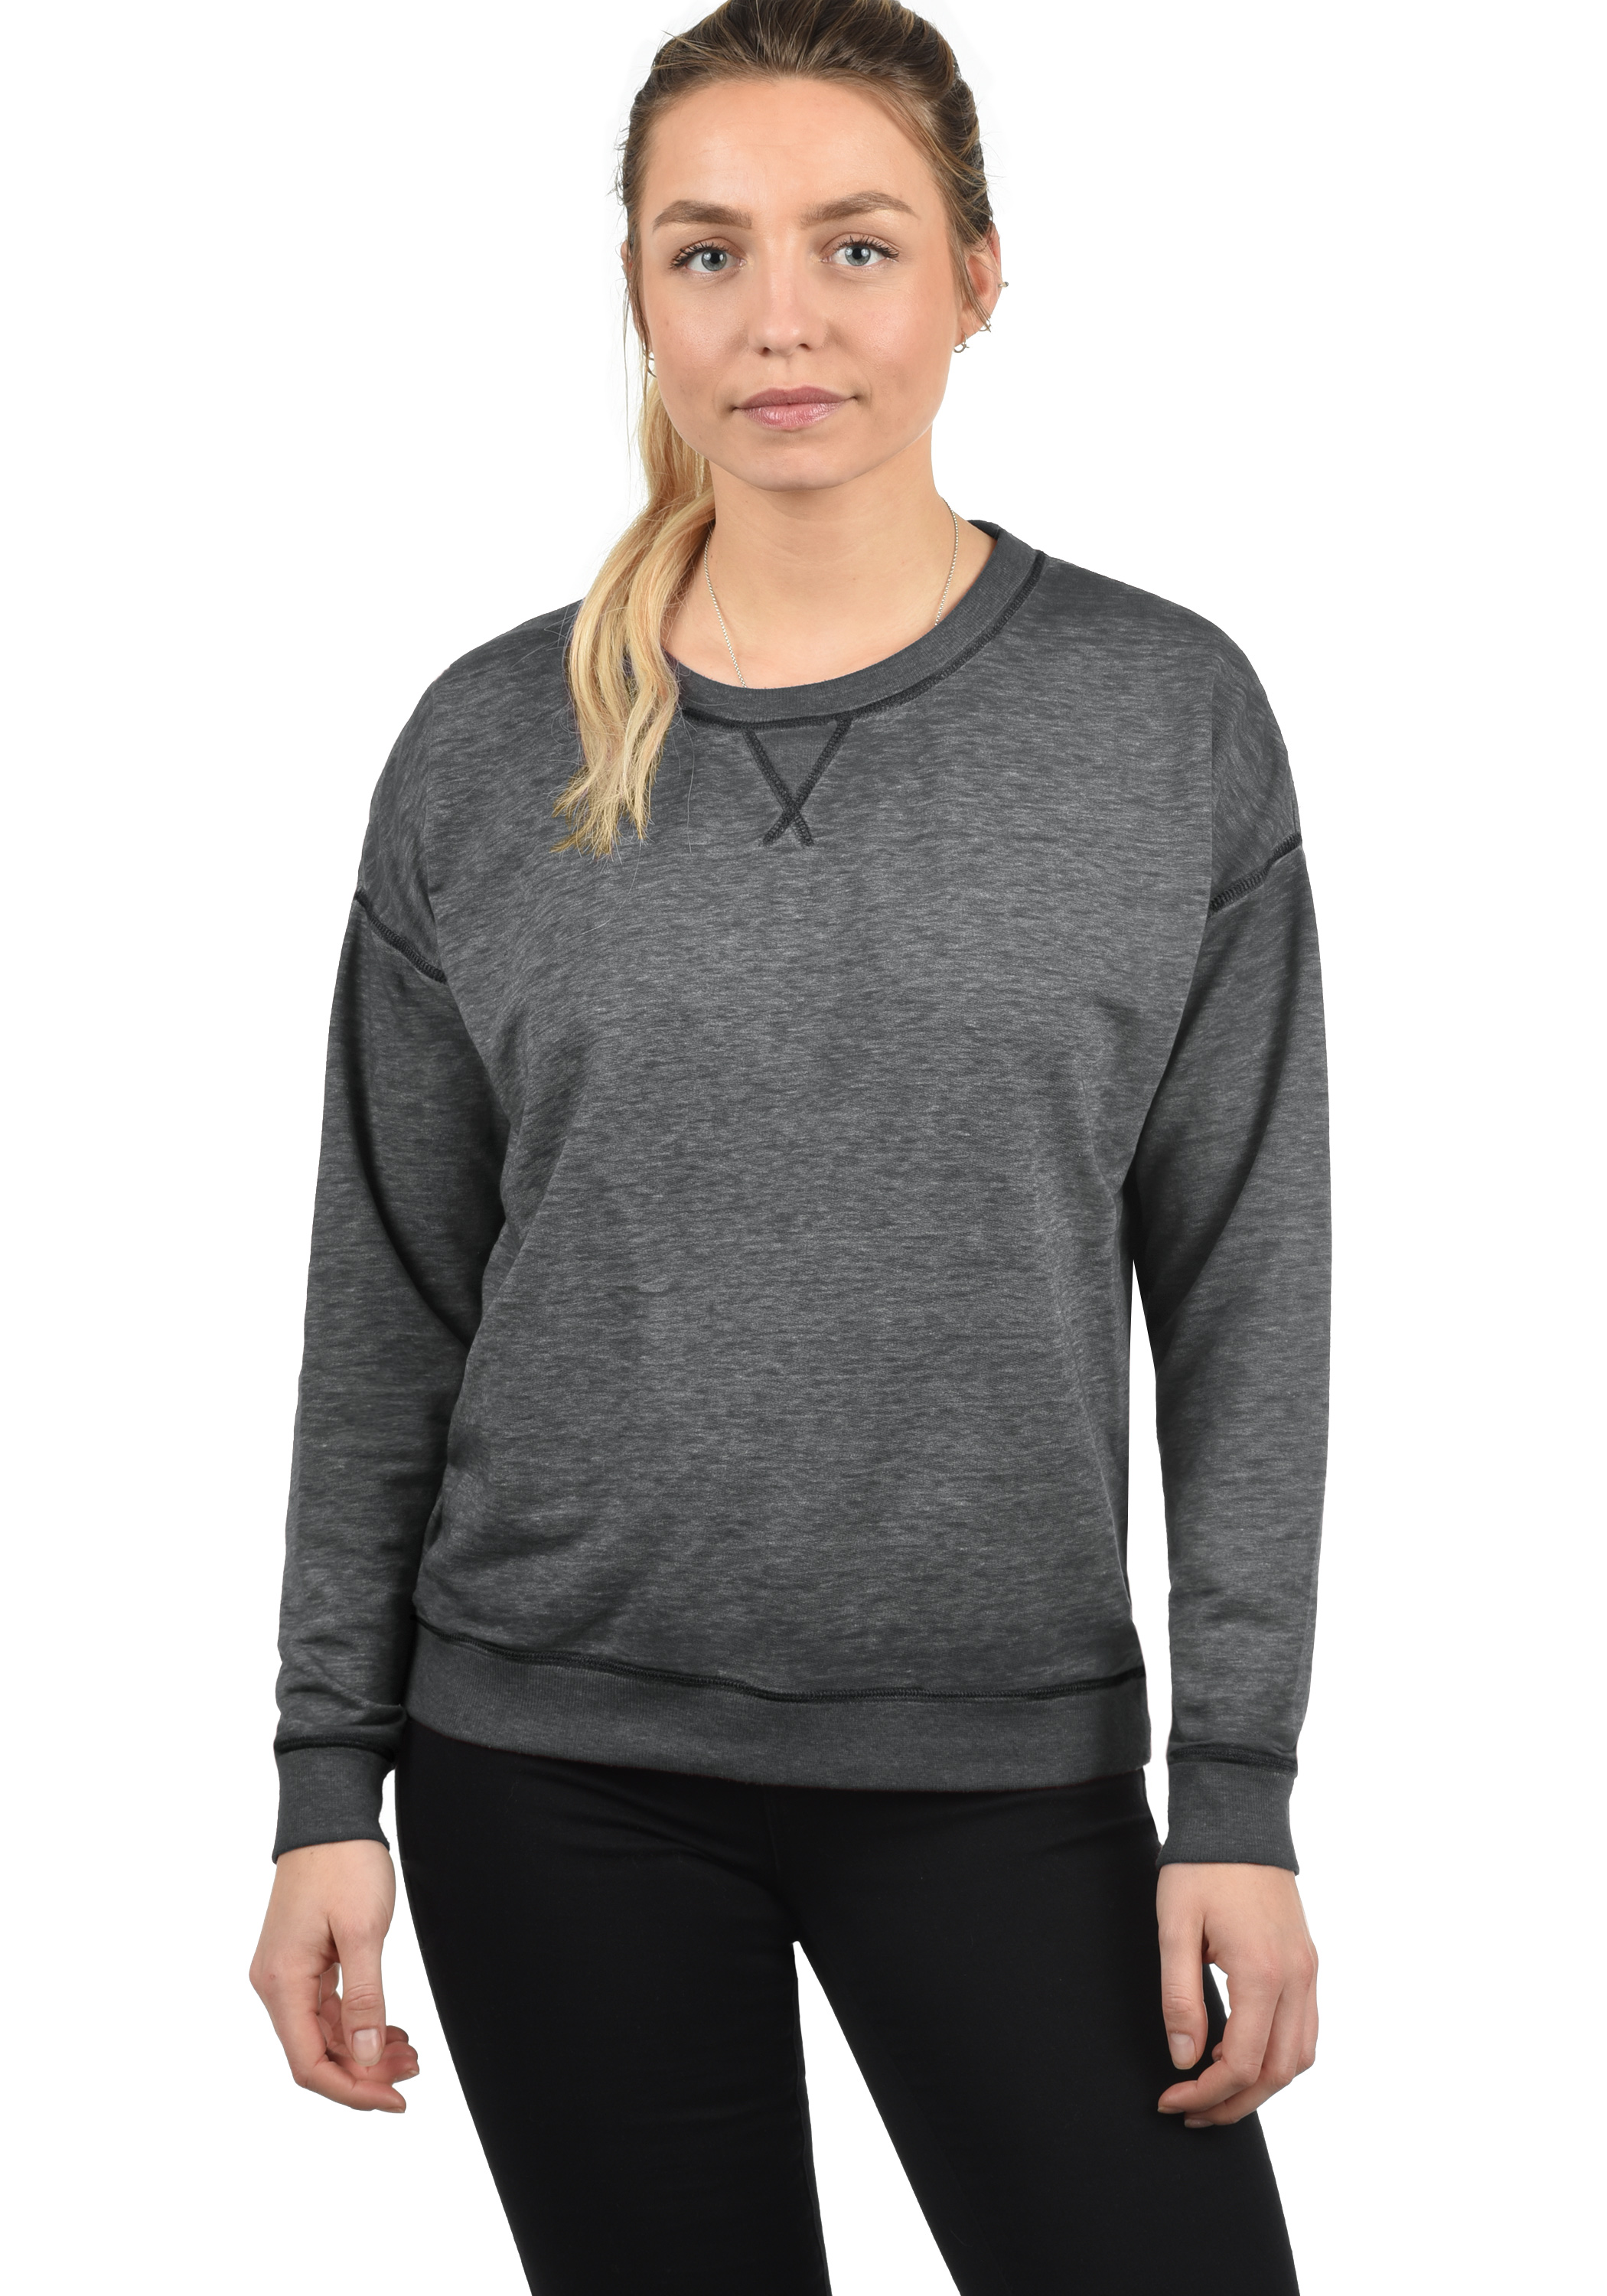 DESIRES Bianca Sweatshirt